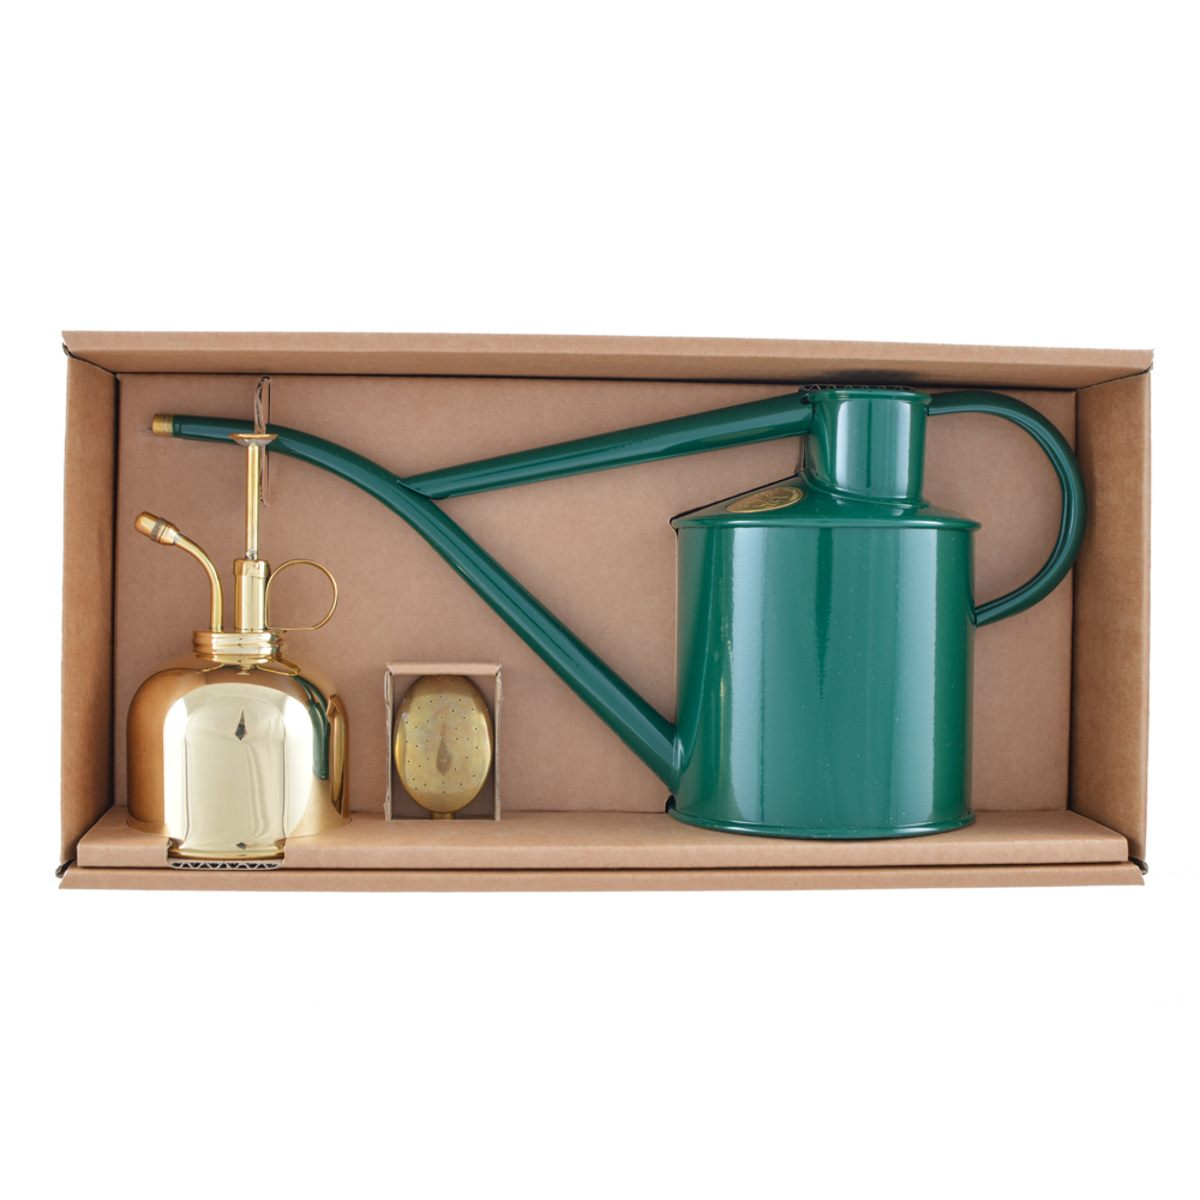 Haws Classic Watering Set - Green & Brass - Watering Set - Throw Some Seeds - Australian gardening gifts and eco products online!